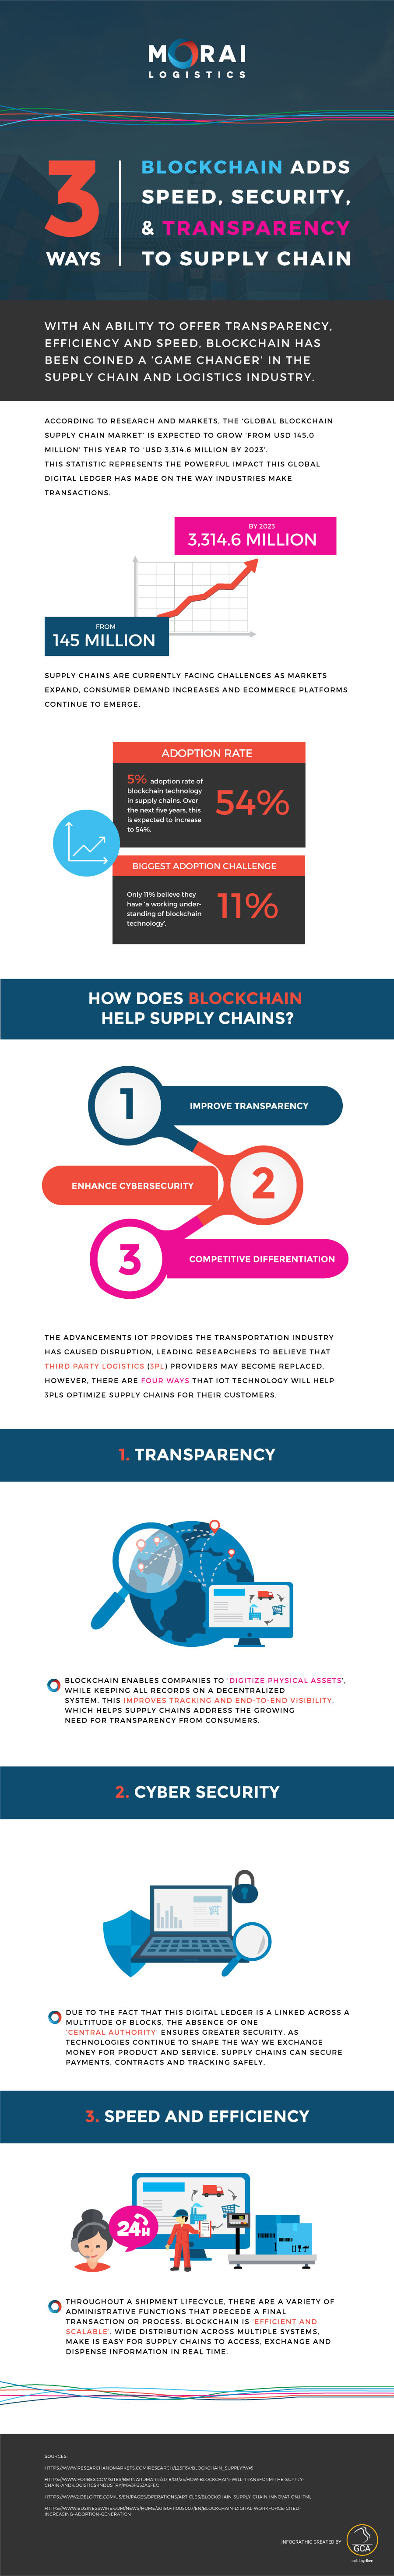 morai-infographic-3-Ways-Blockchain-Adds-Speed-Security-Transparency-to-Supply-Chains